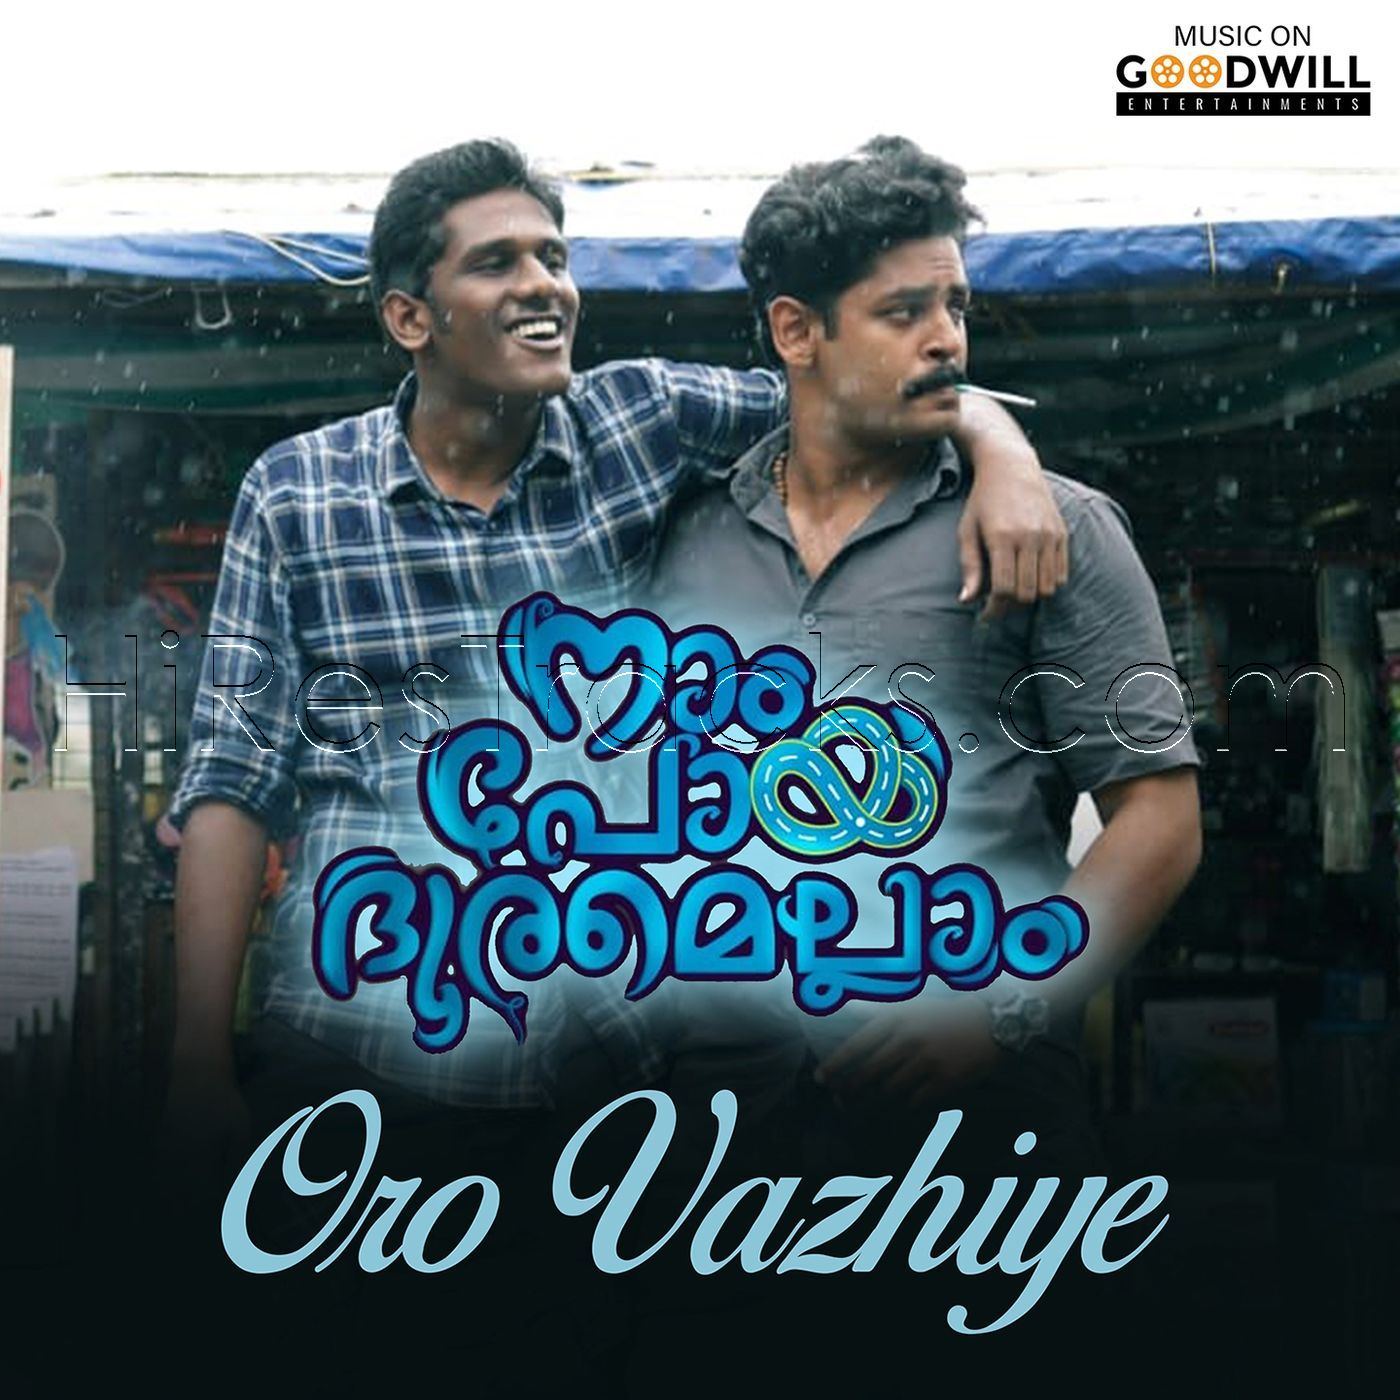 Oro Vazhiye (From Naam Poya Dooramellaam) (2019) (Ambuj DR) (Goodwill Entertainments) [Digital-RIP-FLAC]